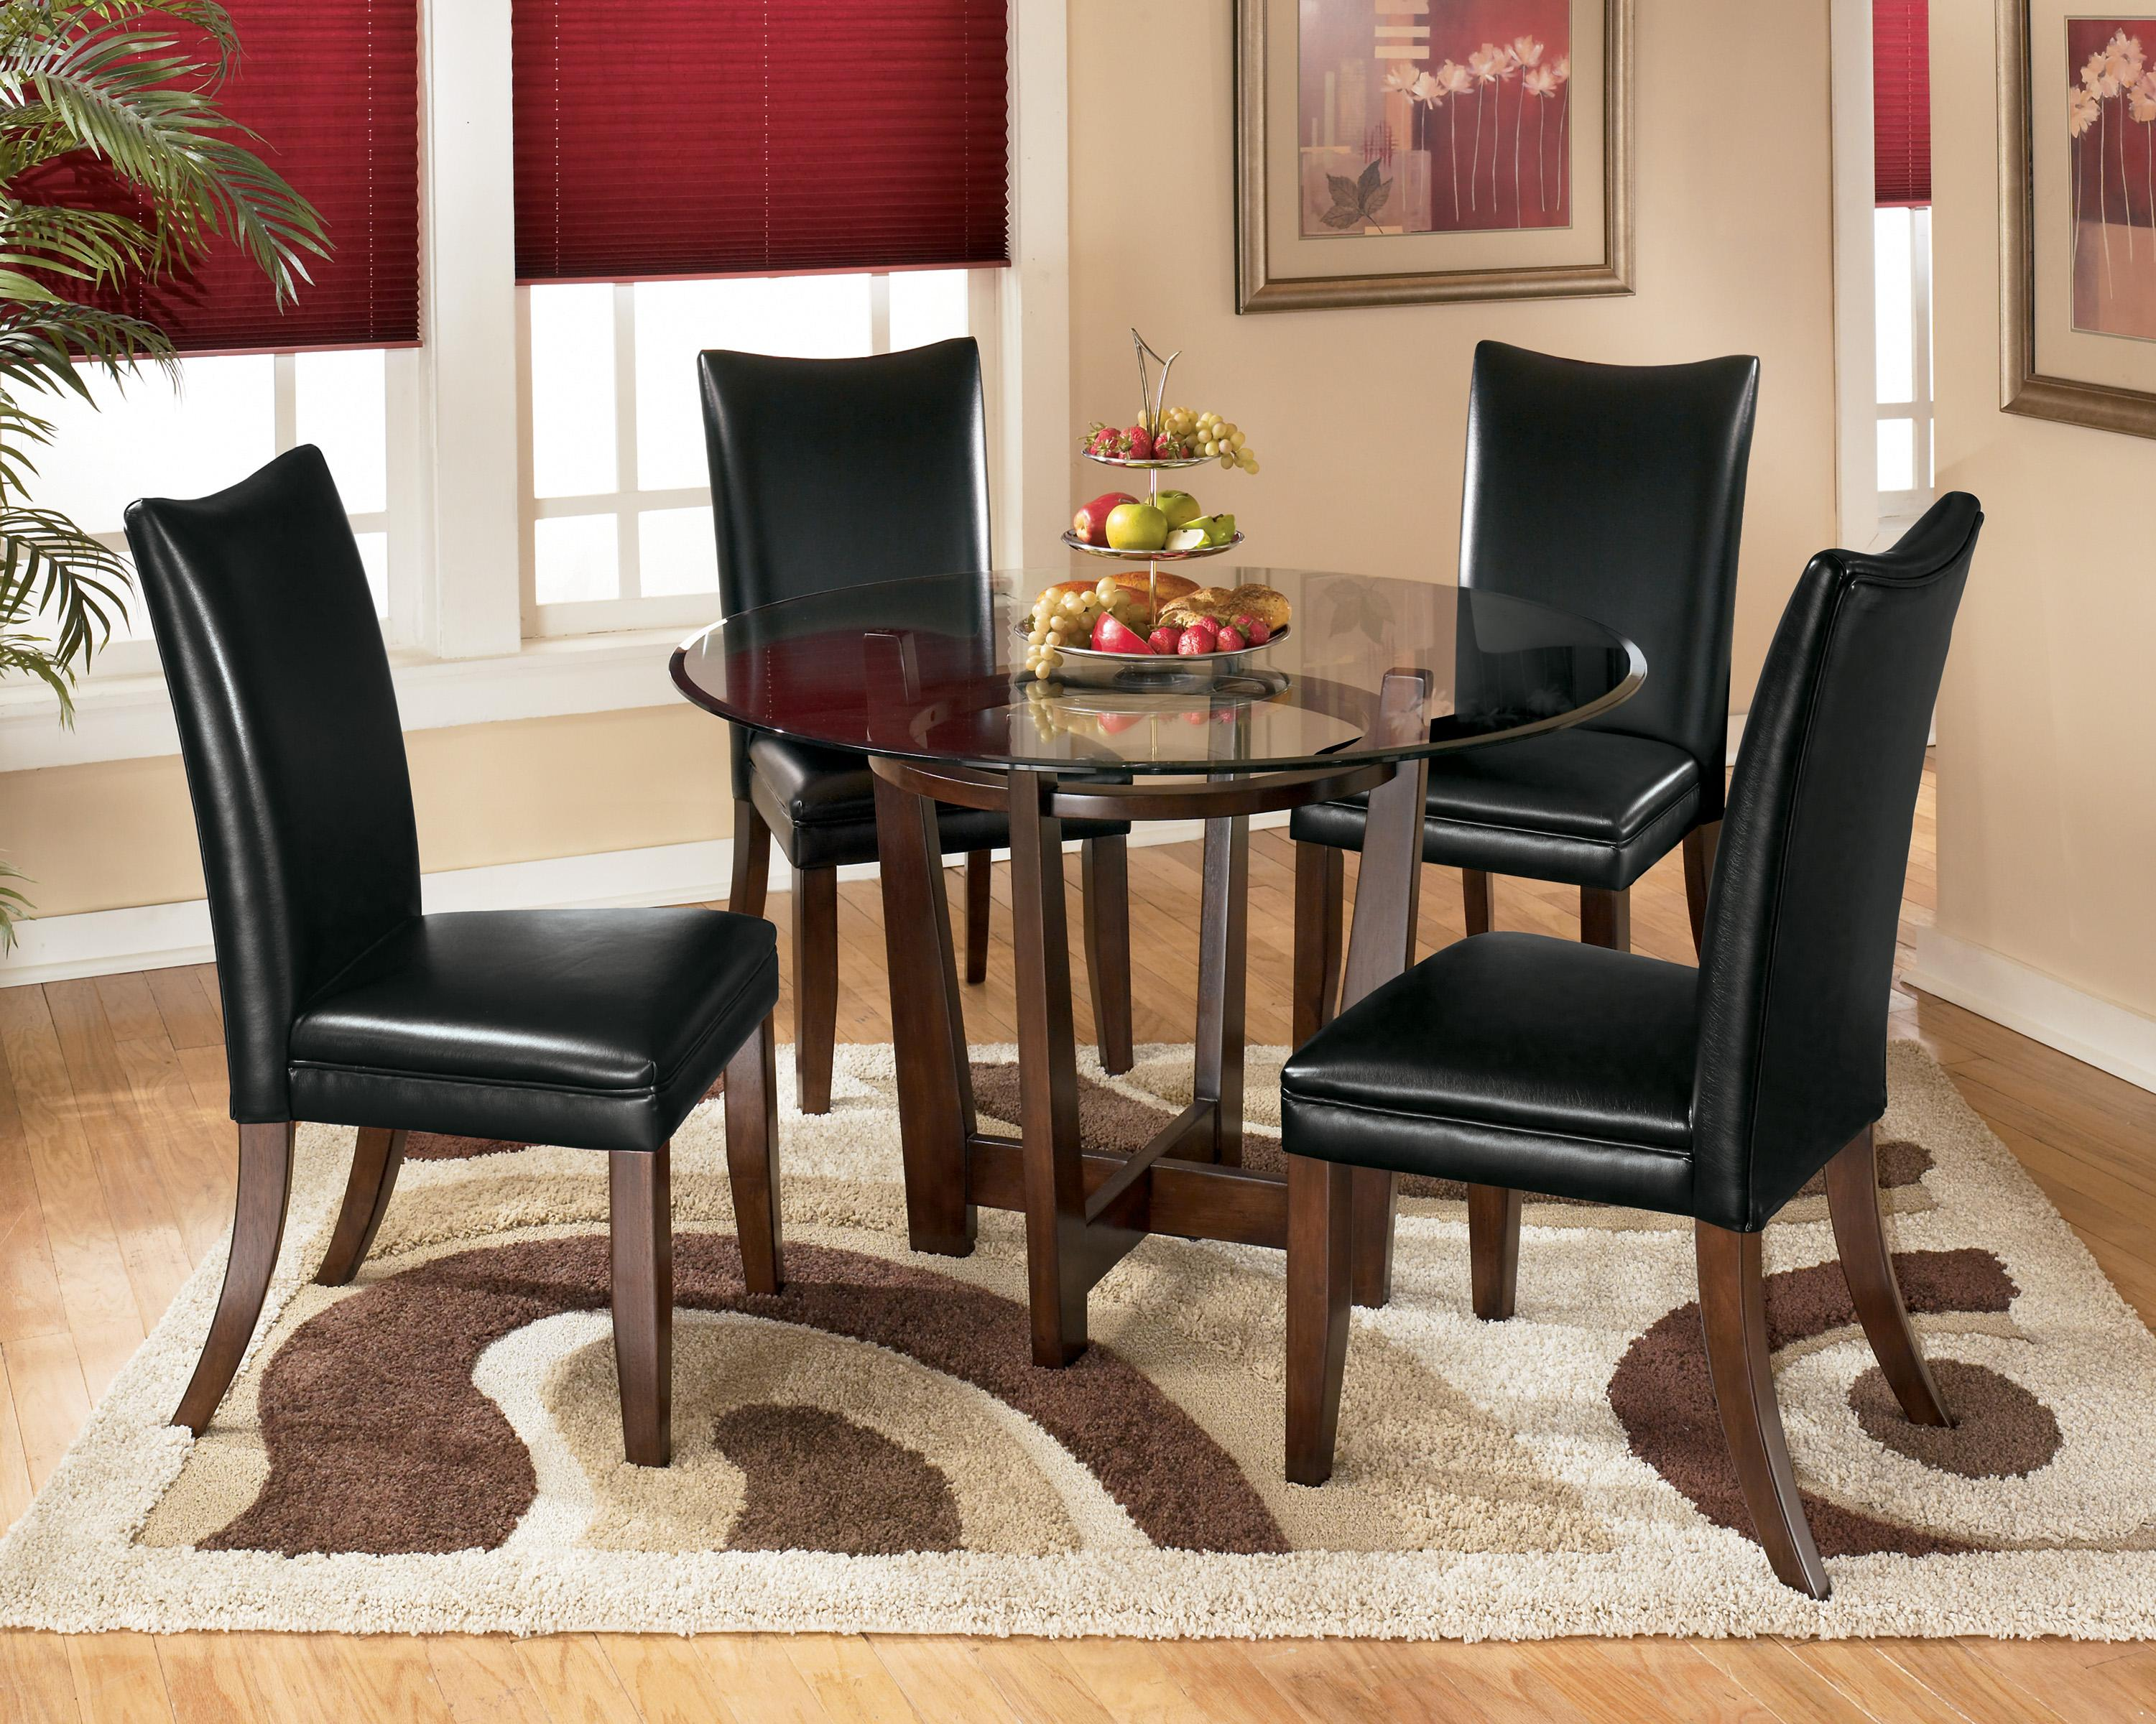 Signature Design By Ashley Charrell 5 Piece Round Dining Table Set   Item  Number: D357